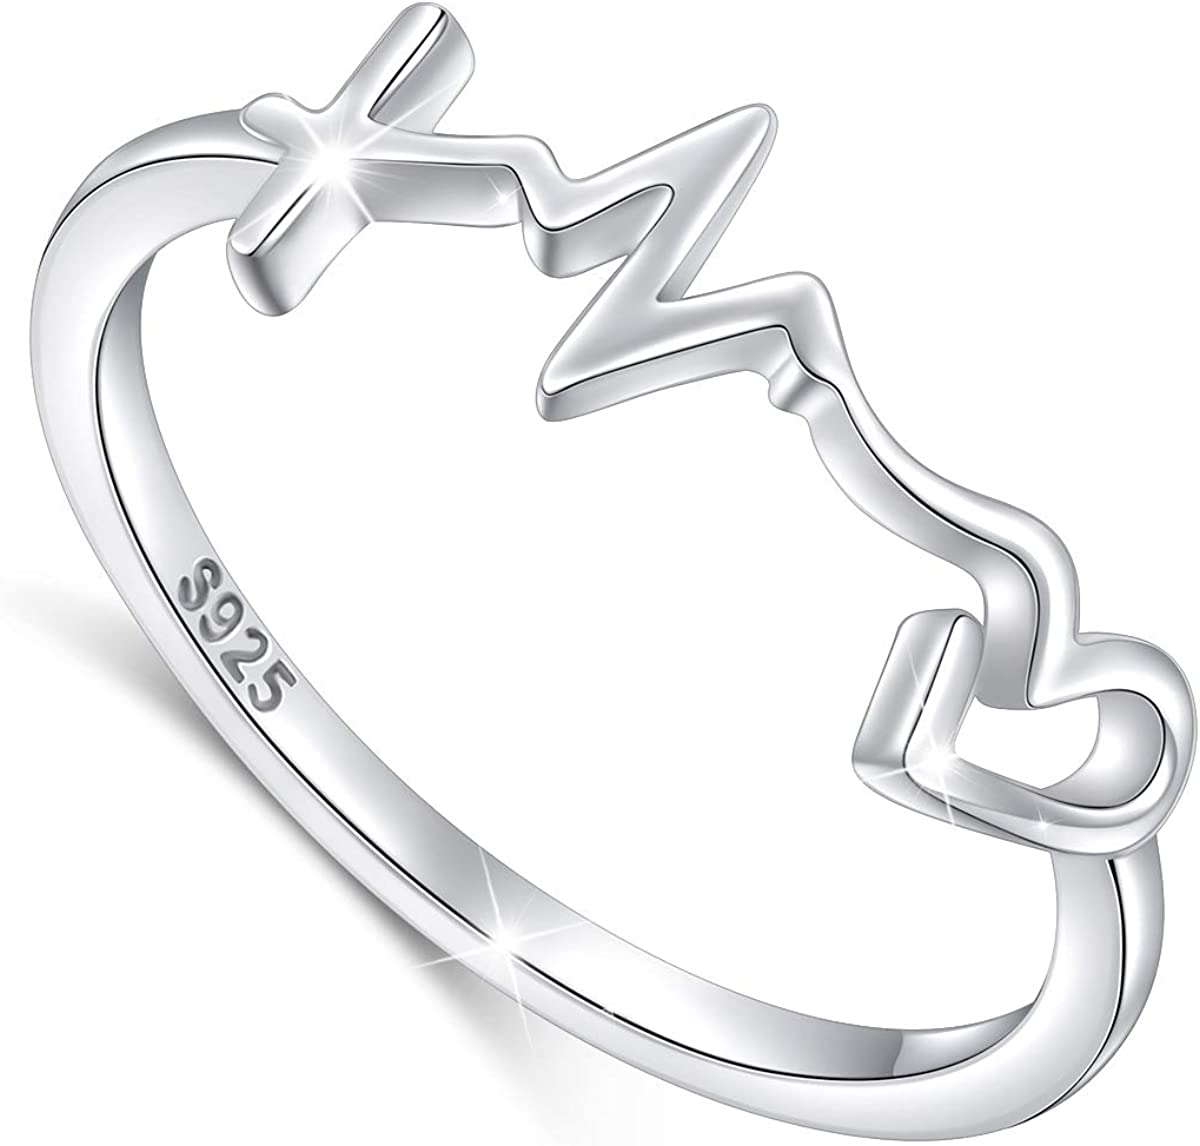 S925 Sterling Silver Faith Hope Love Ring for Women Girls Christian Jewelry Gifts